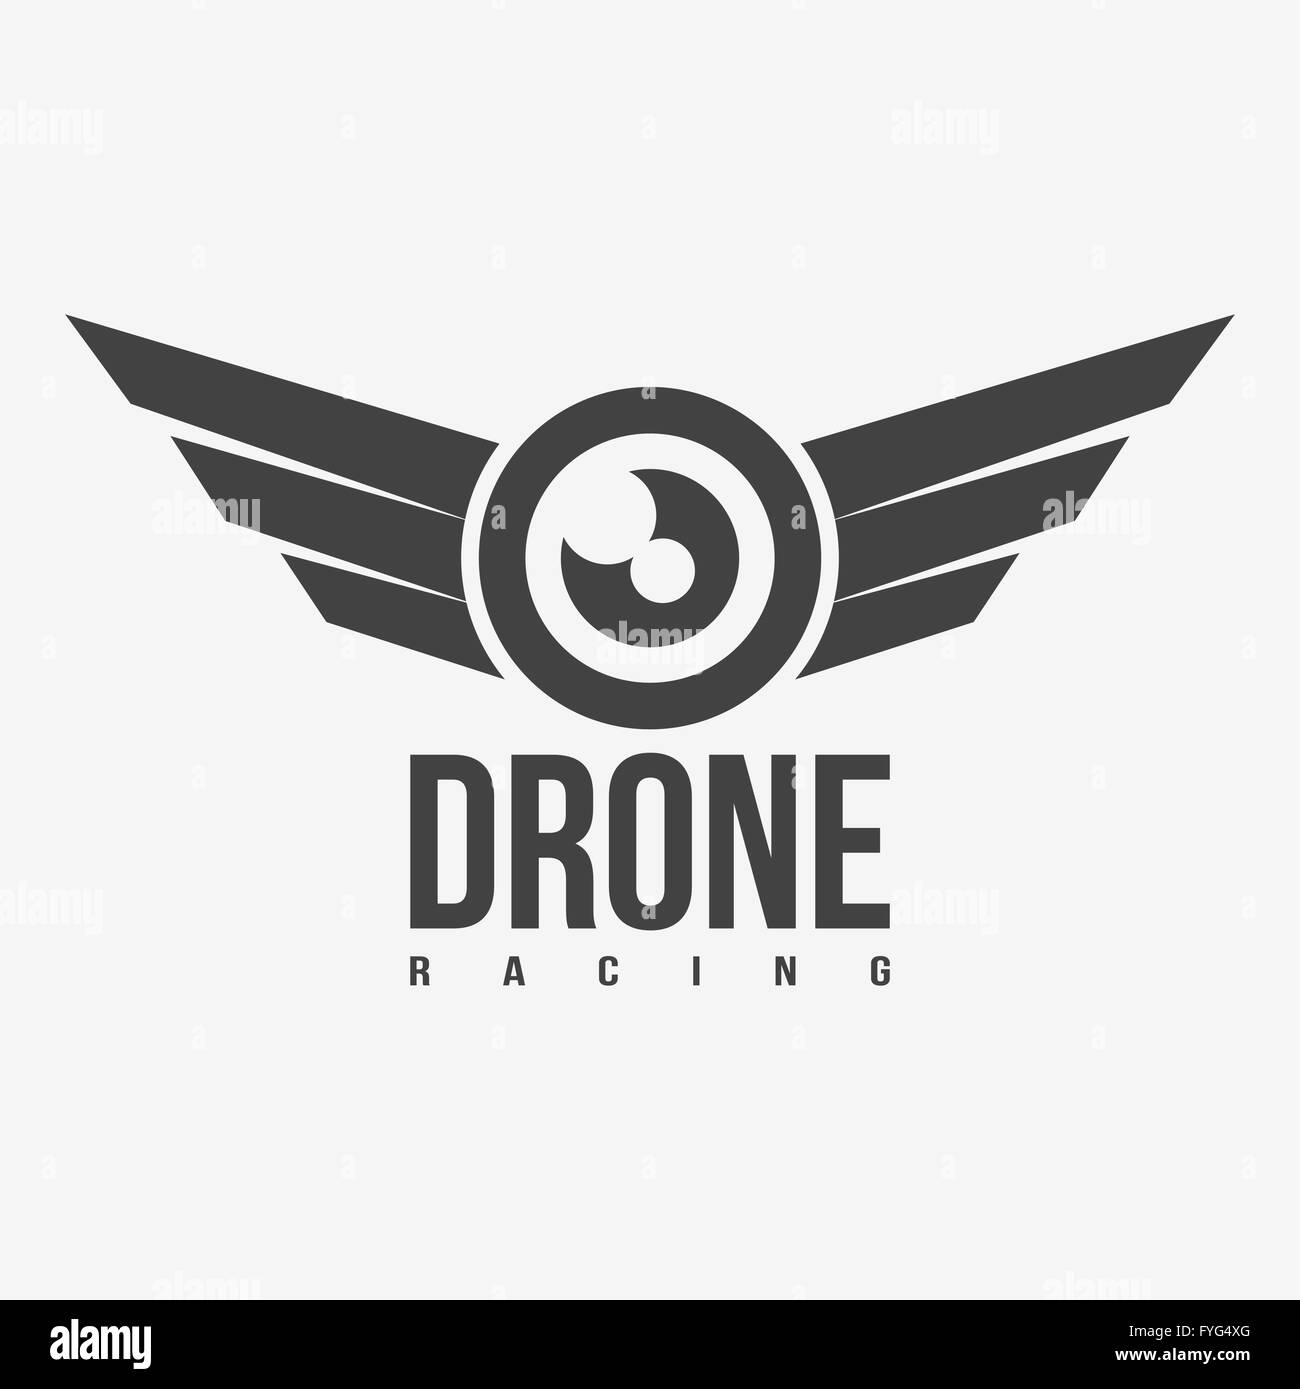 Black and white drone racing logo. Stock Vector